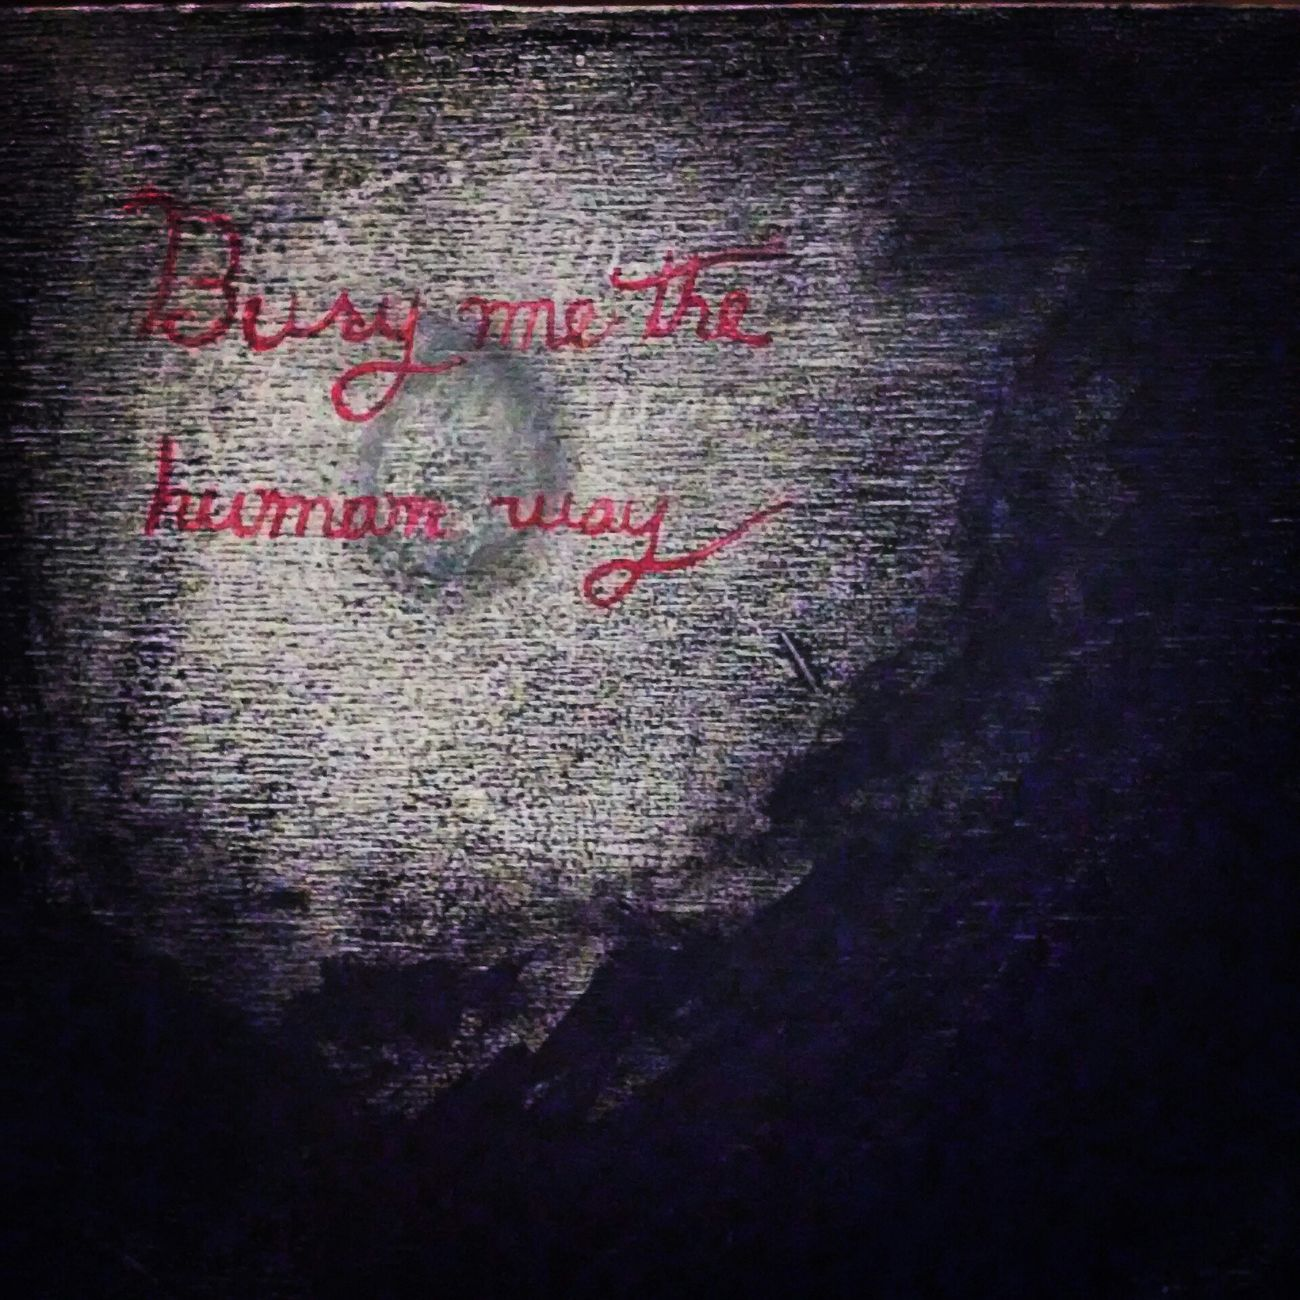 """Bury me the human way."" A ""sweet spot"" on my recent work. My Handwriting Art, Drawing, Creativity Ink Ink Drawing Writting In Cursive Writing On The Wall Mortality Dark Phrase Dark Fairytale"